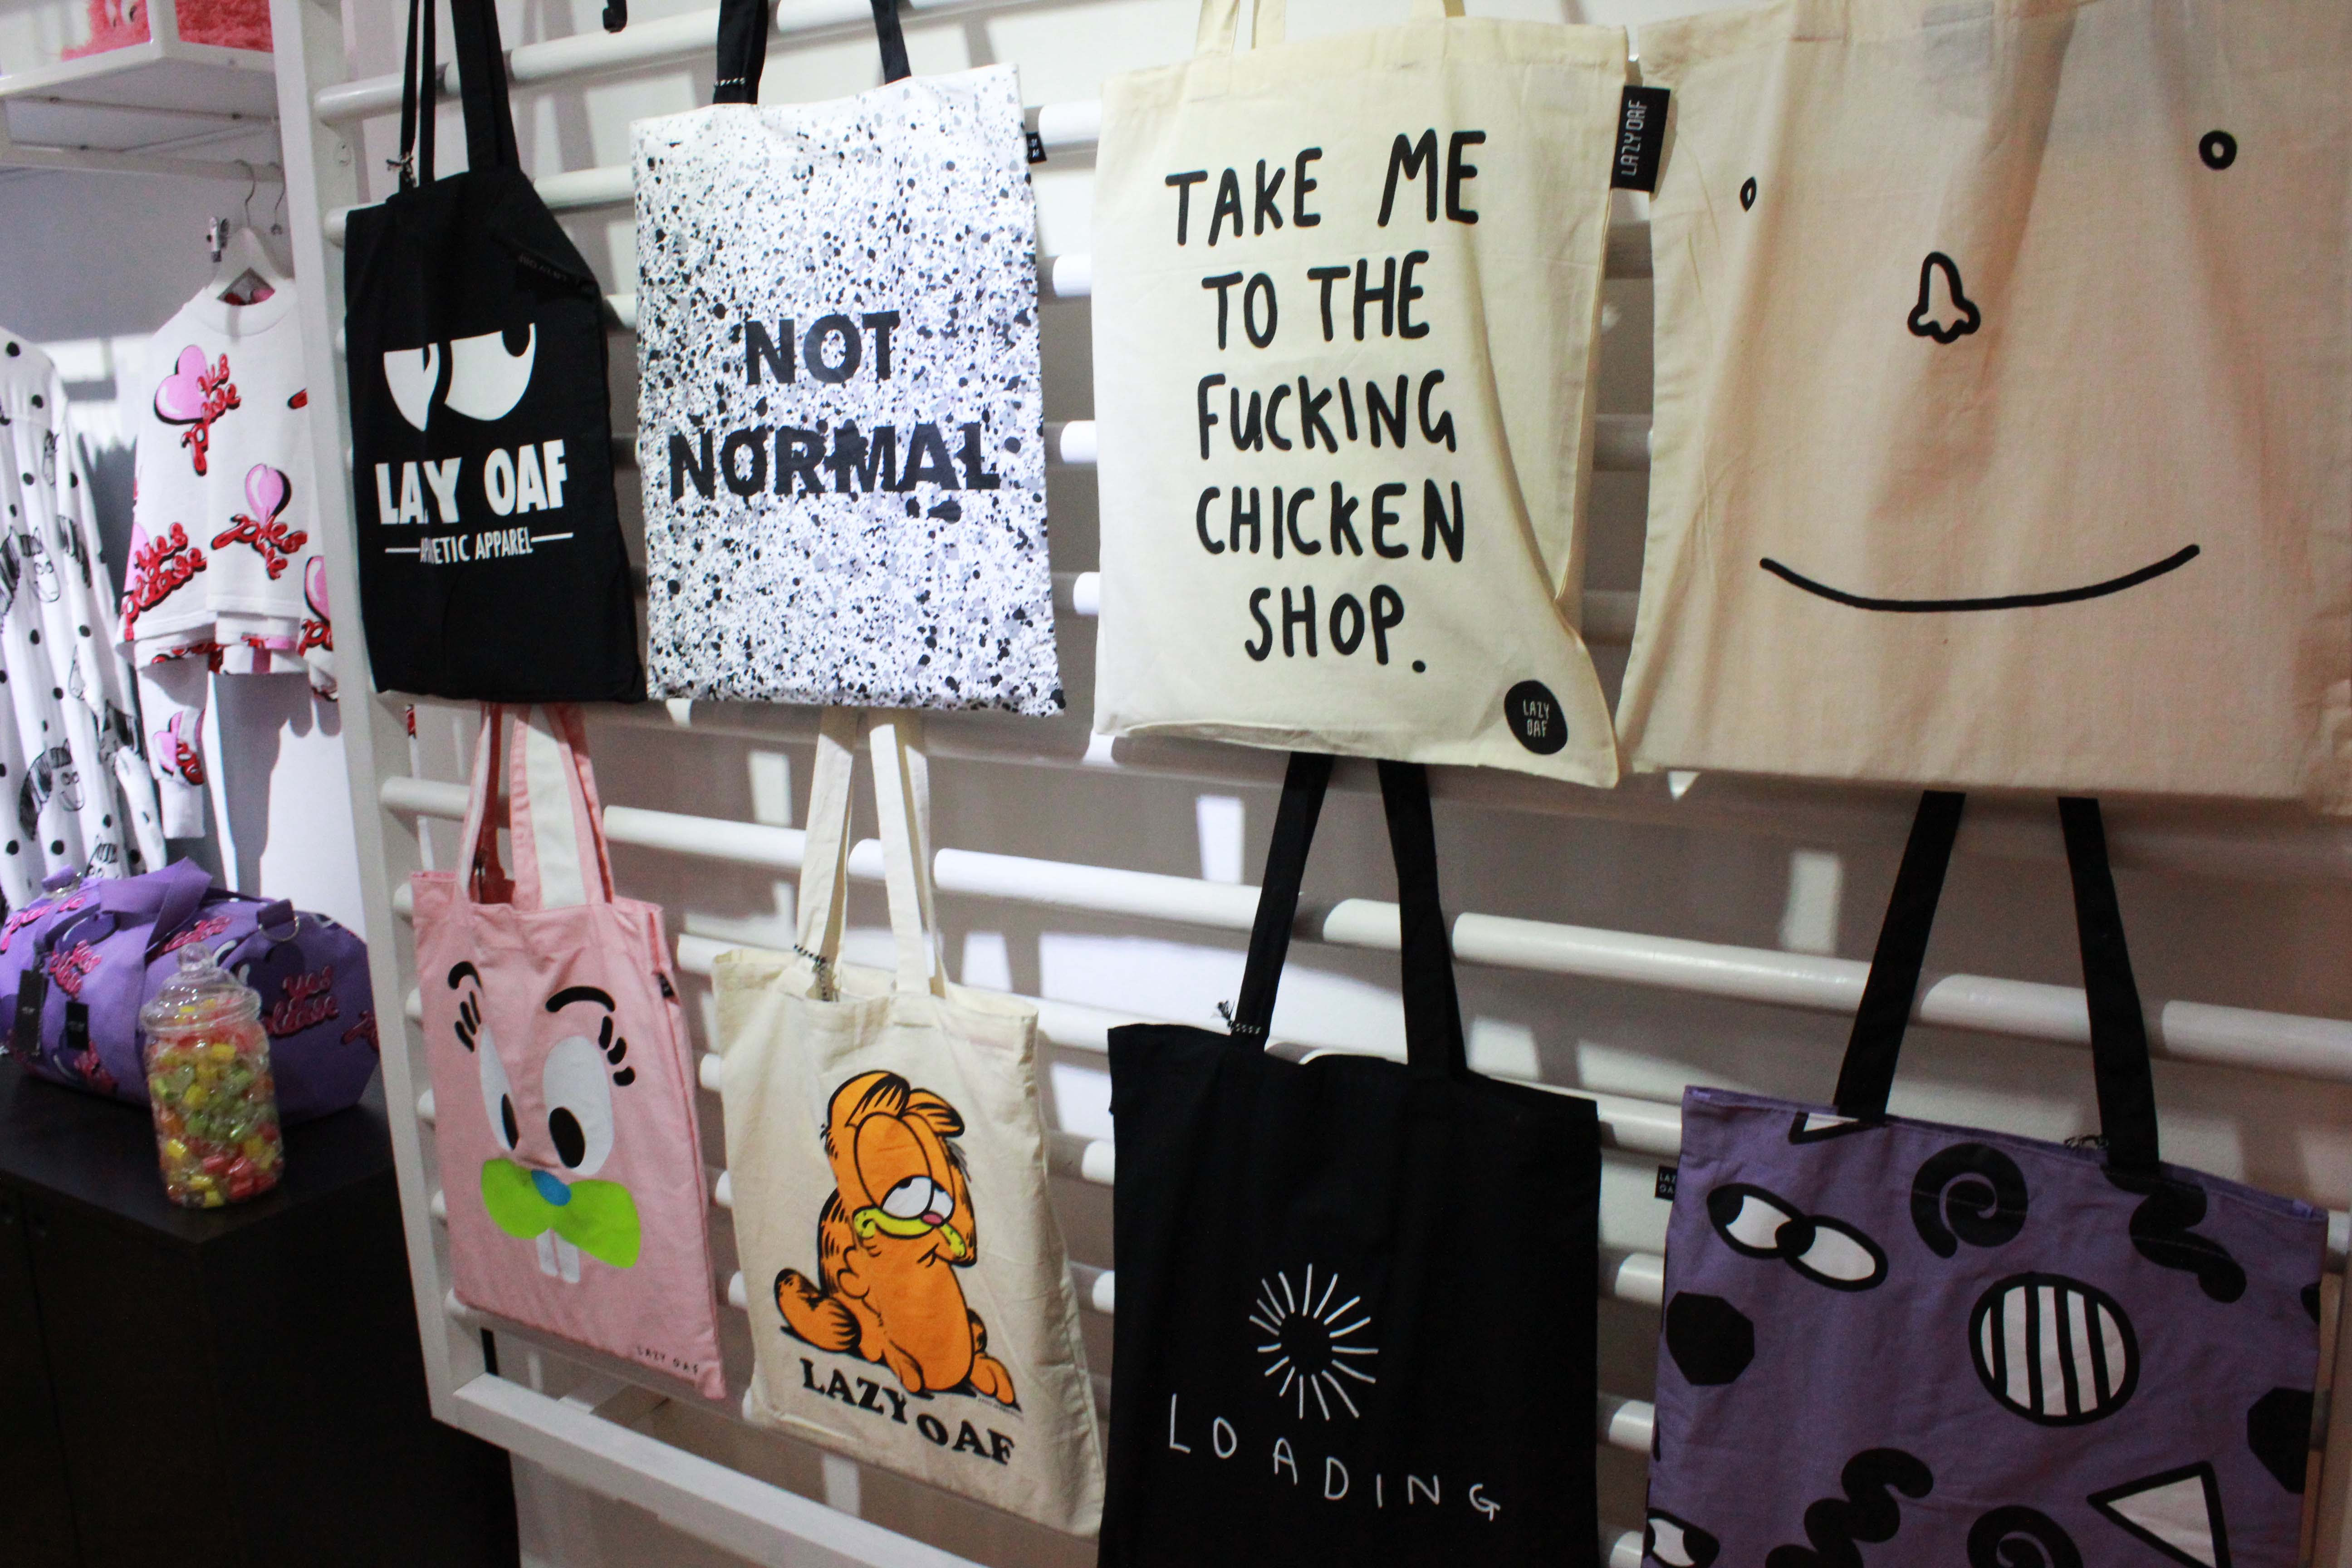 Lazy Oaf tote shopper canvas bags